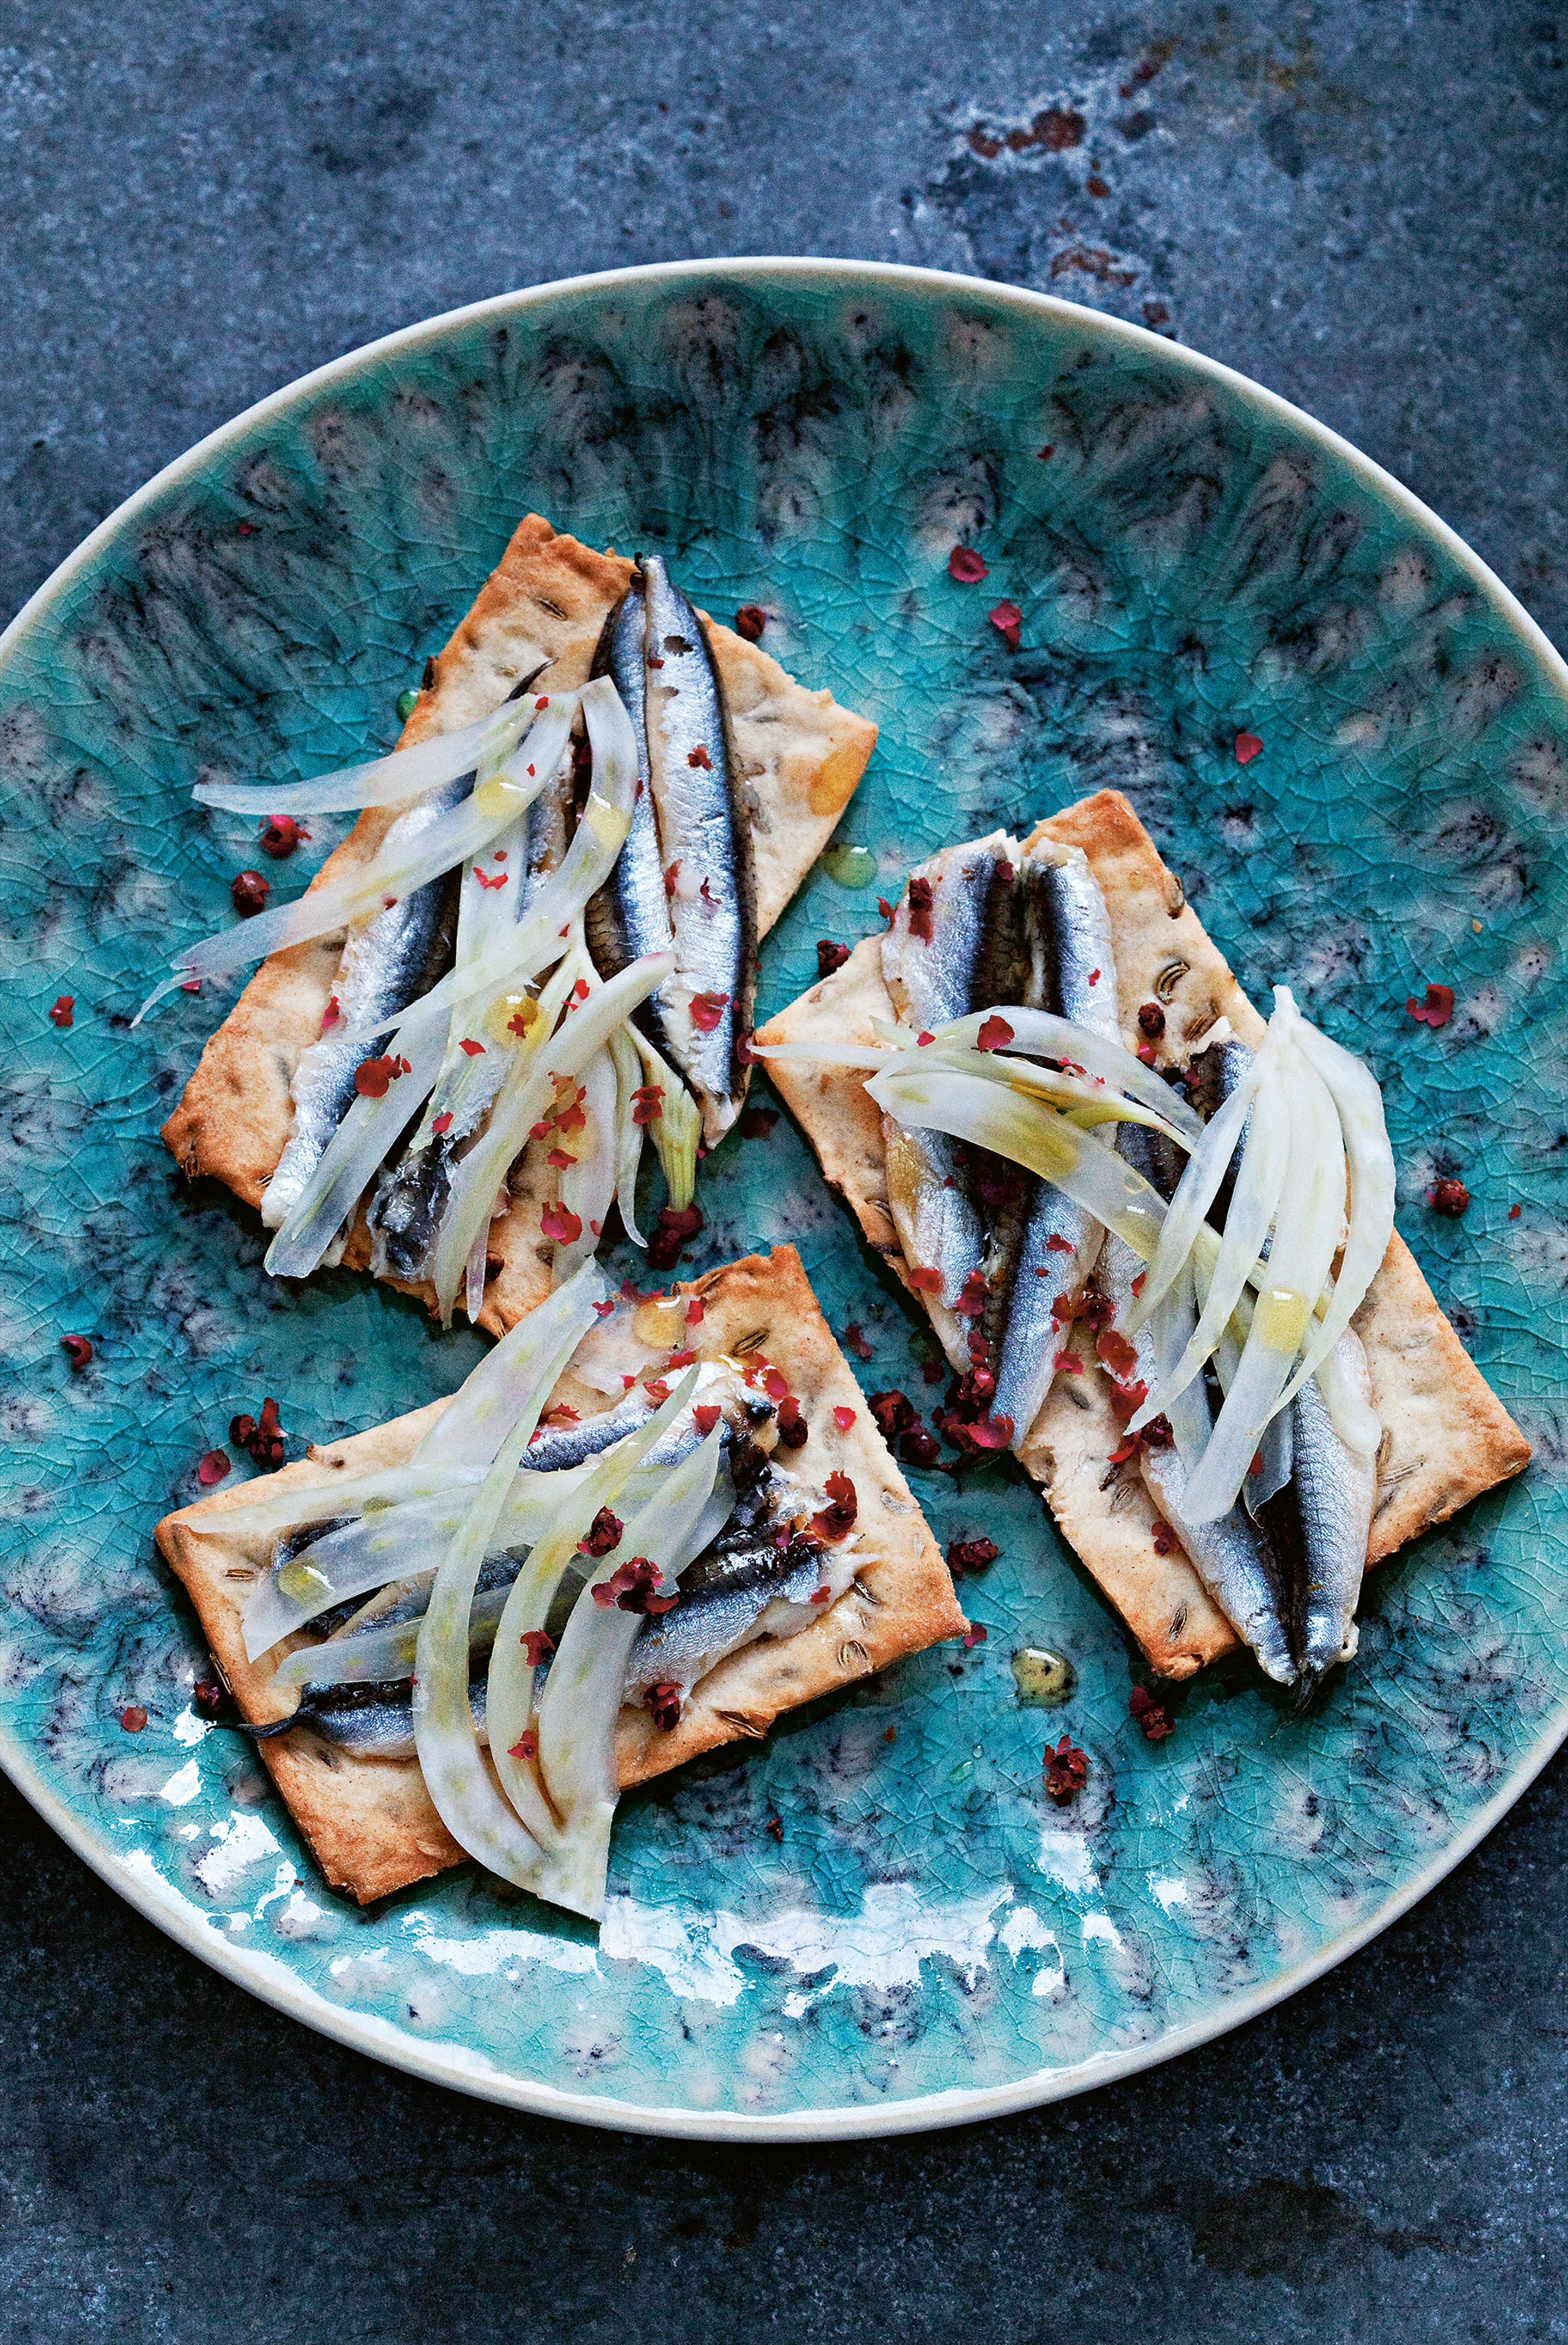 Sour cream & fennel seed crackers with anchovies